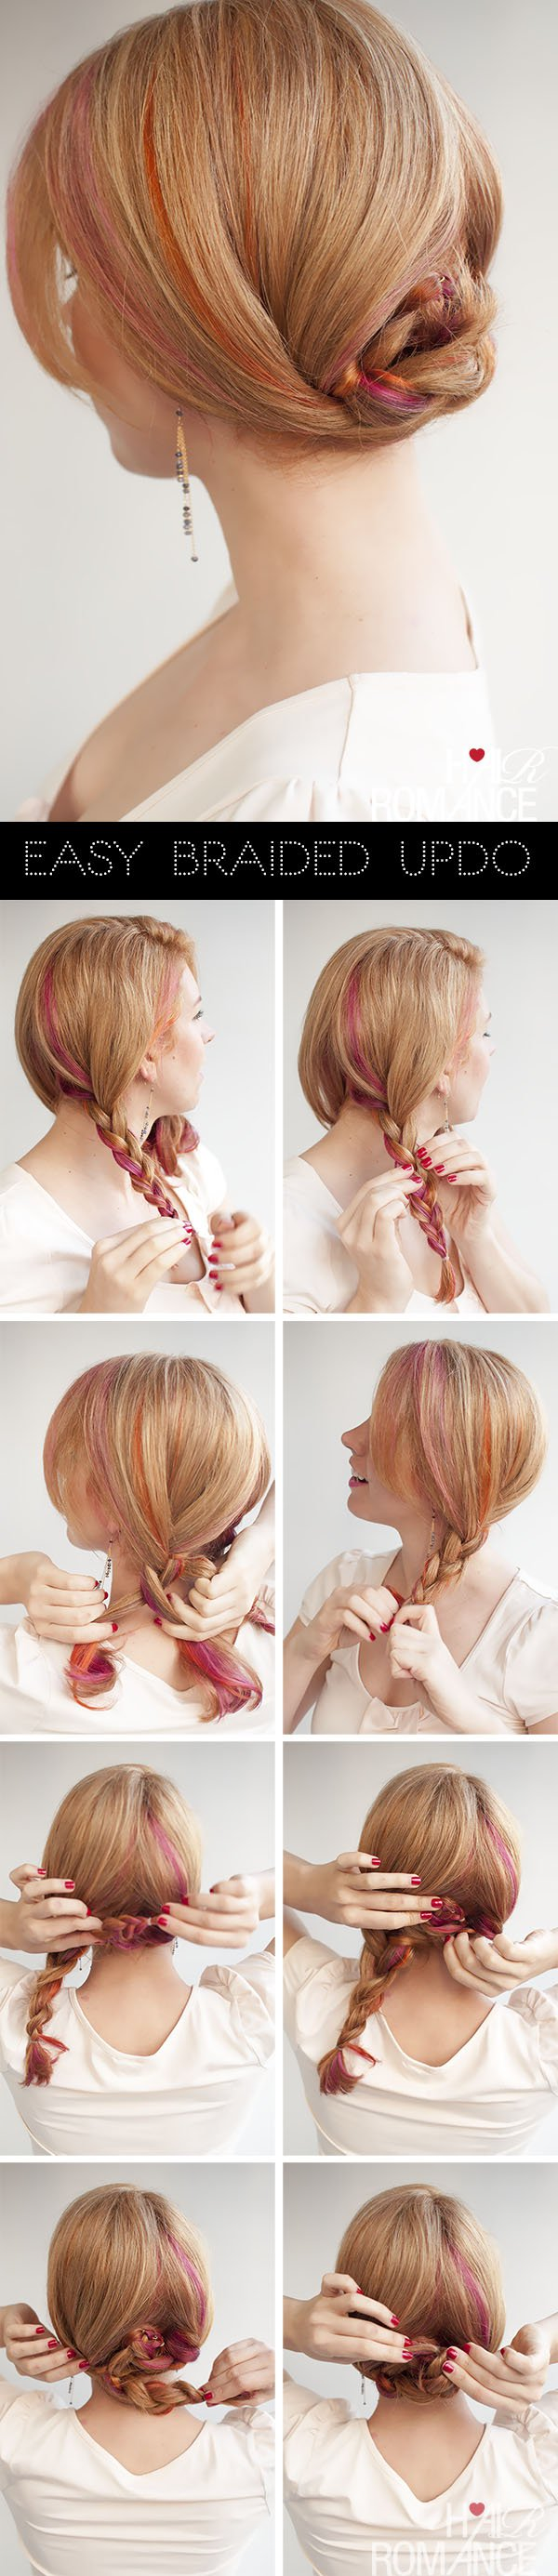 Simple braided updo for women